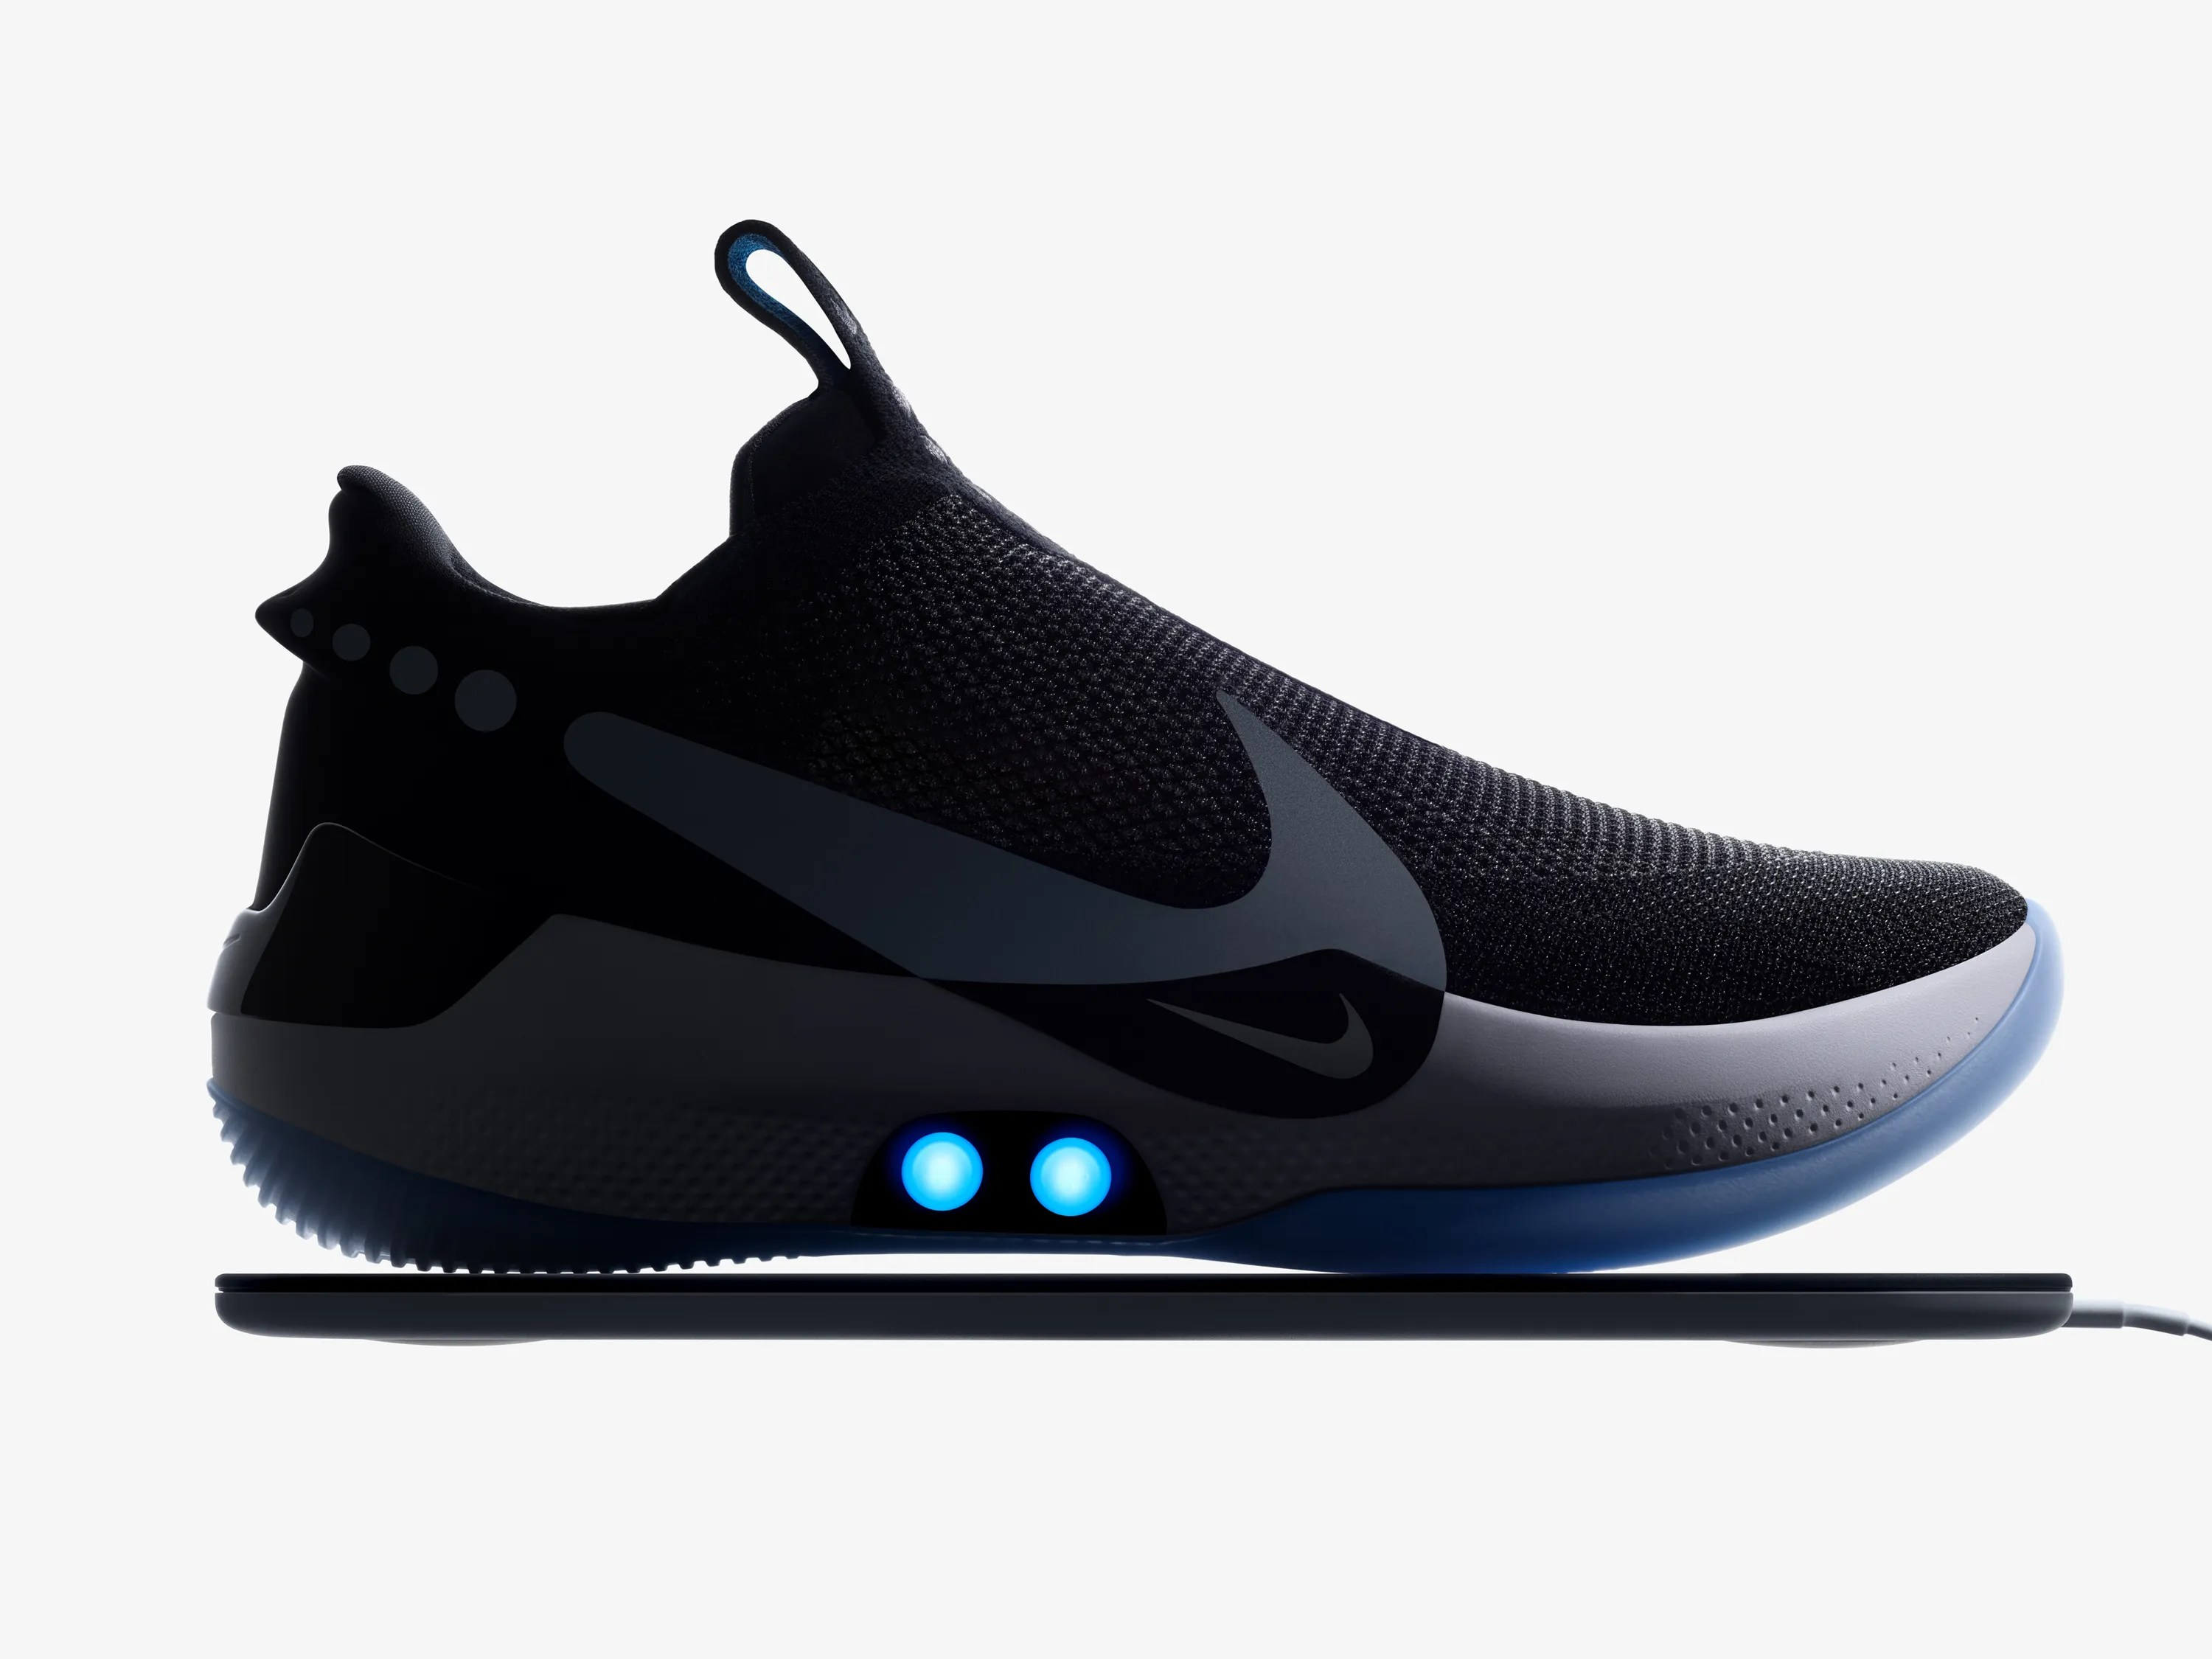 The Nike Hyperadapt Bb Is Laceless Reasonably Priced And